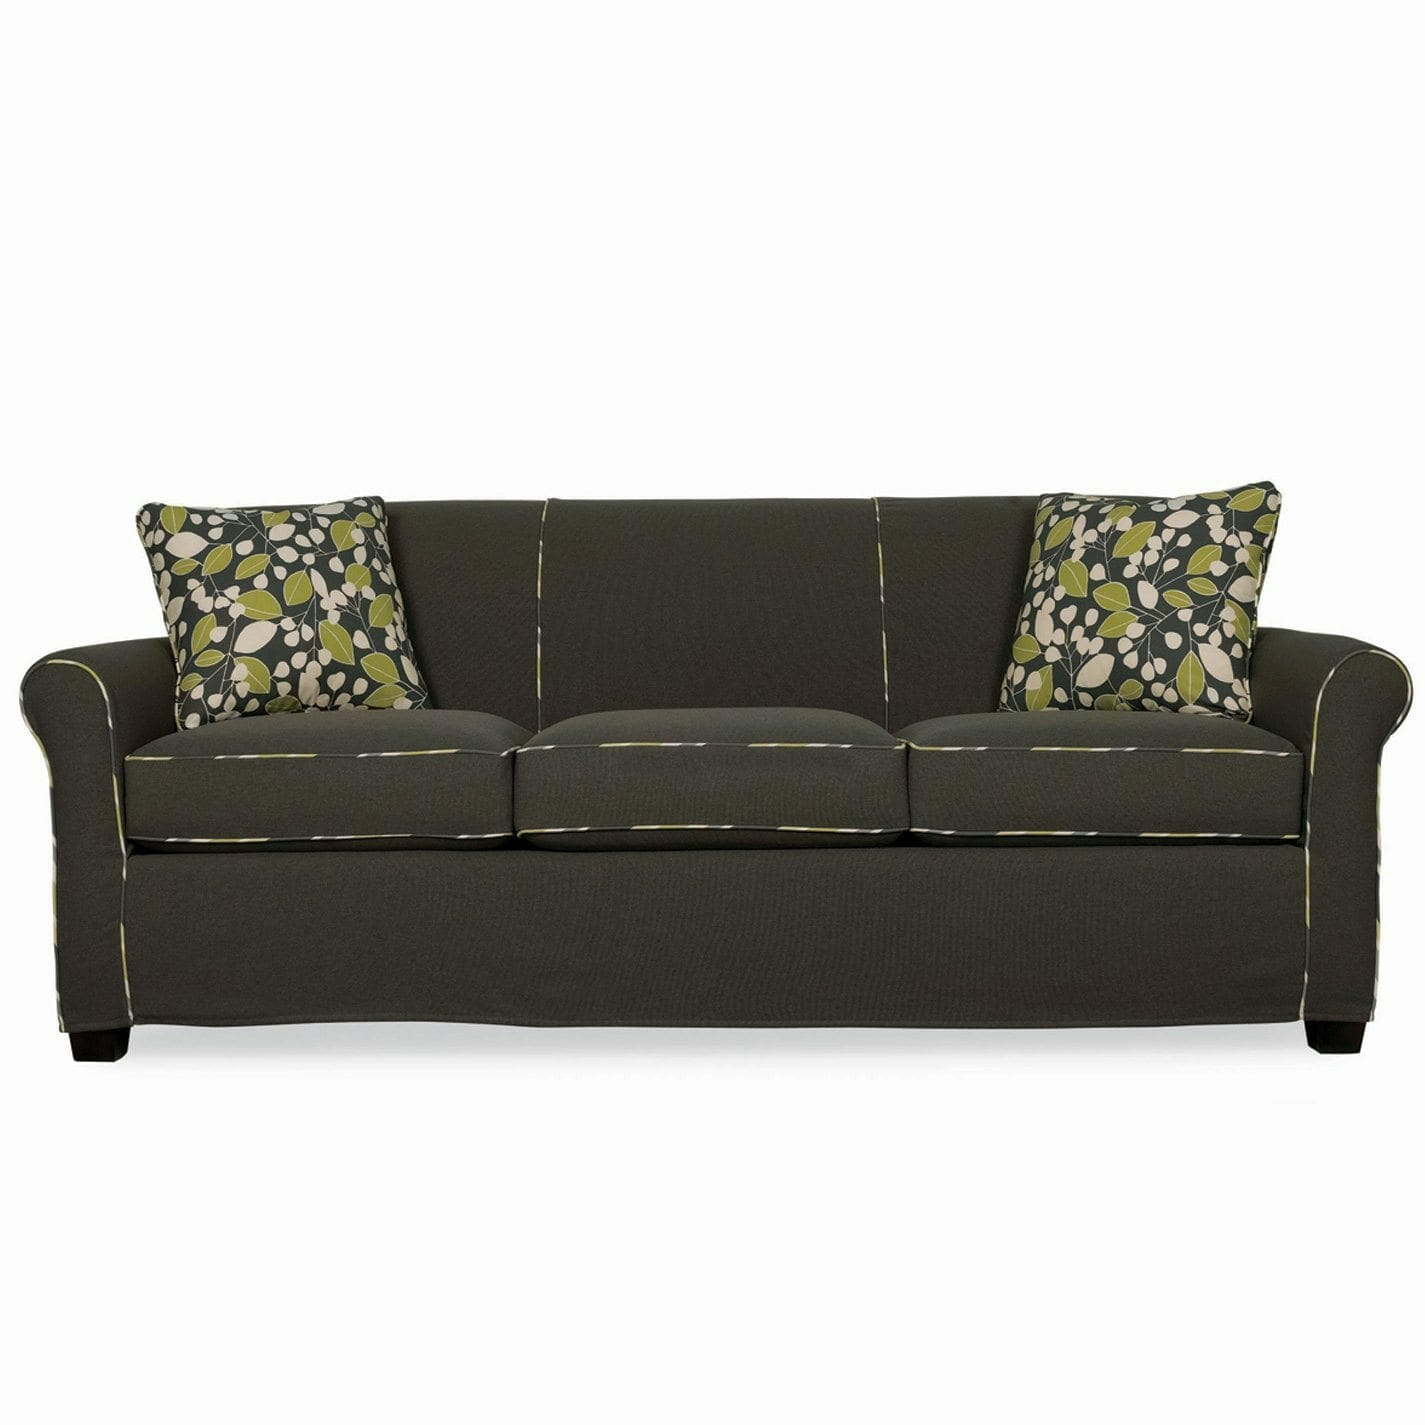 Sofá Studio Design Criciúma - Sc Sanibel Upholstered Sofa Cottage Home